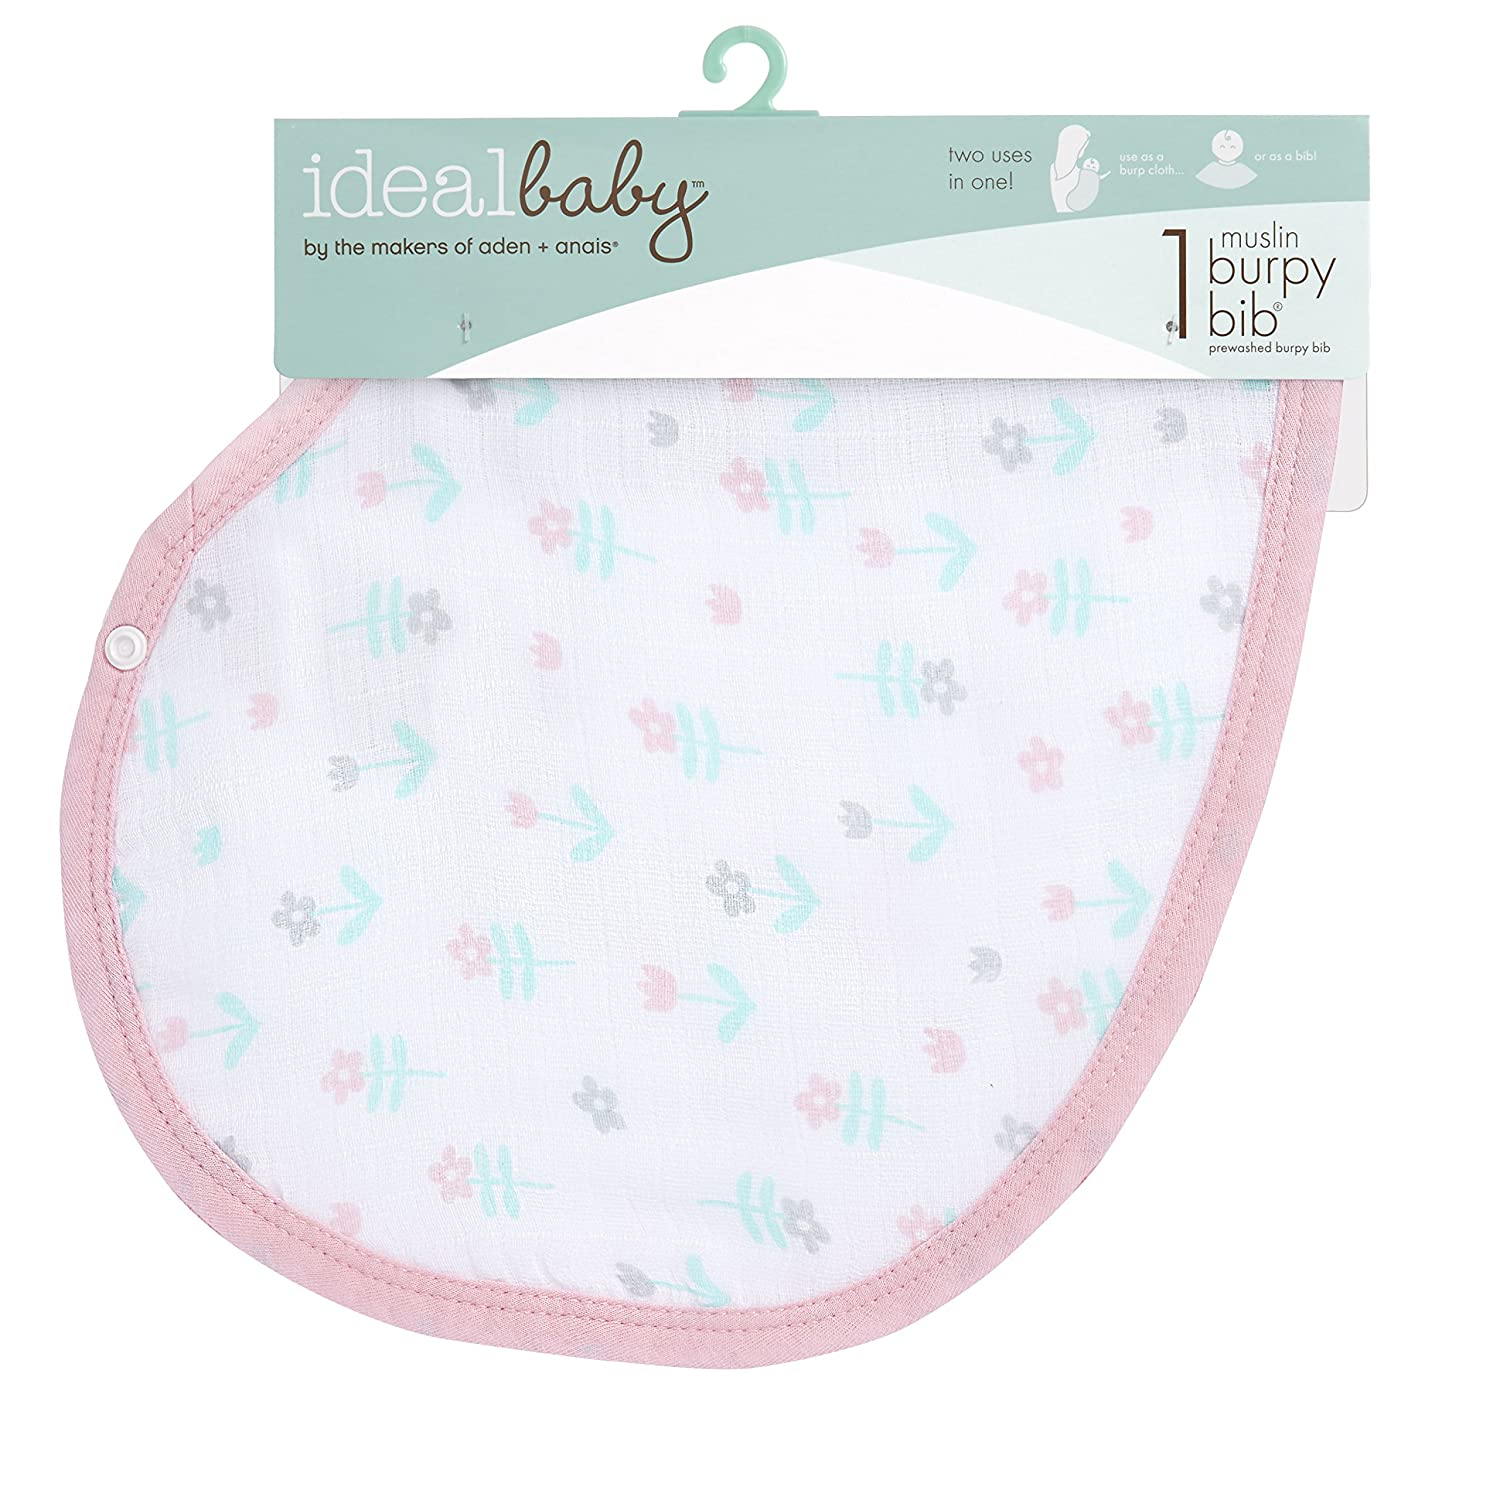 Dreamy ideal baby by the makers of aden anais burpy bib